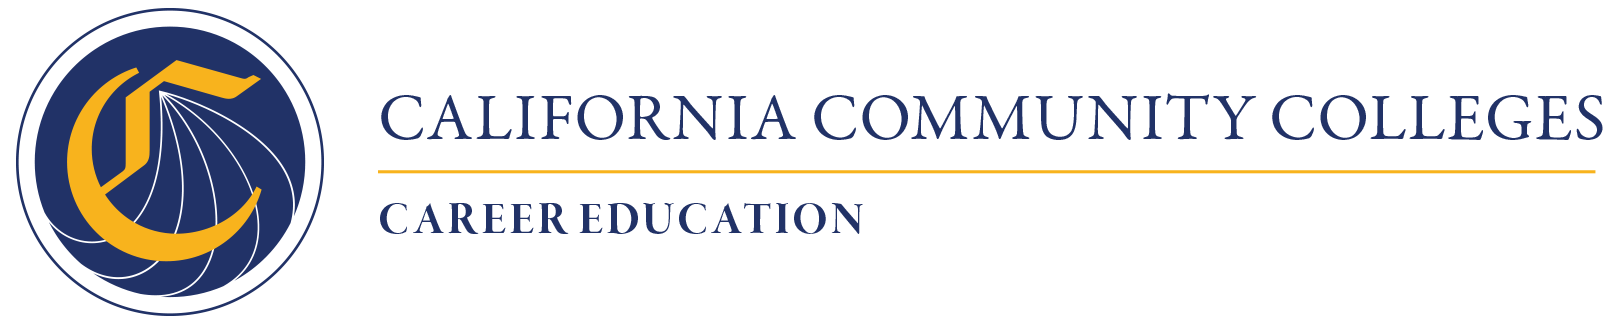 California Community Colleges Career Education Toolkit